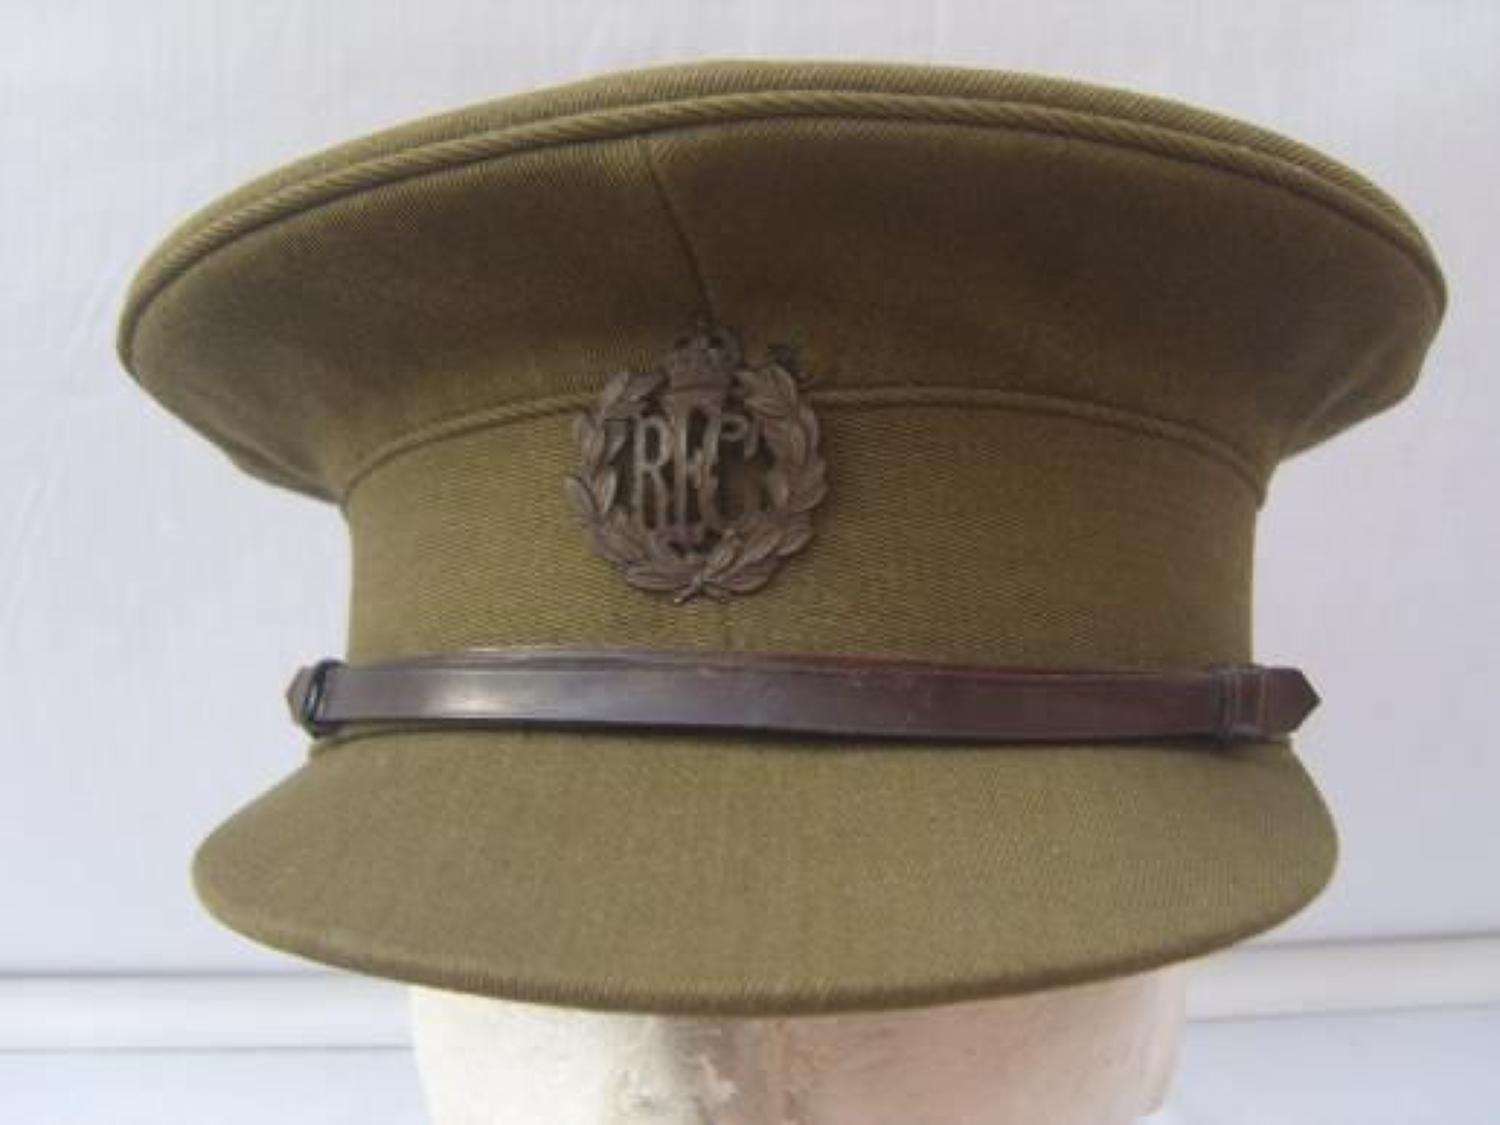 WW1 ROYAL FLYING CORPS OFFICERS SERVICE DRESS CAP